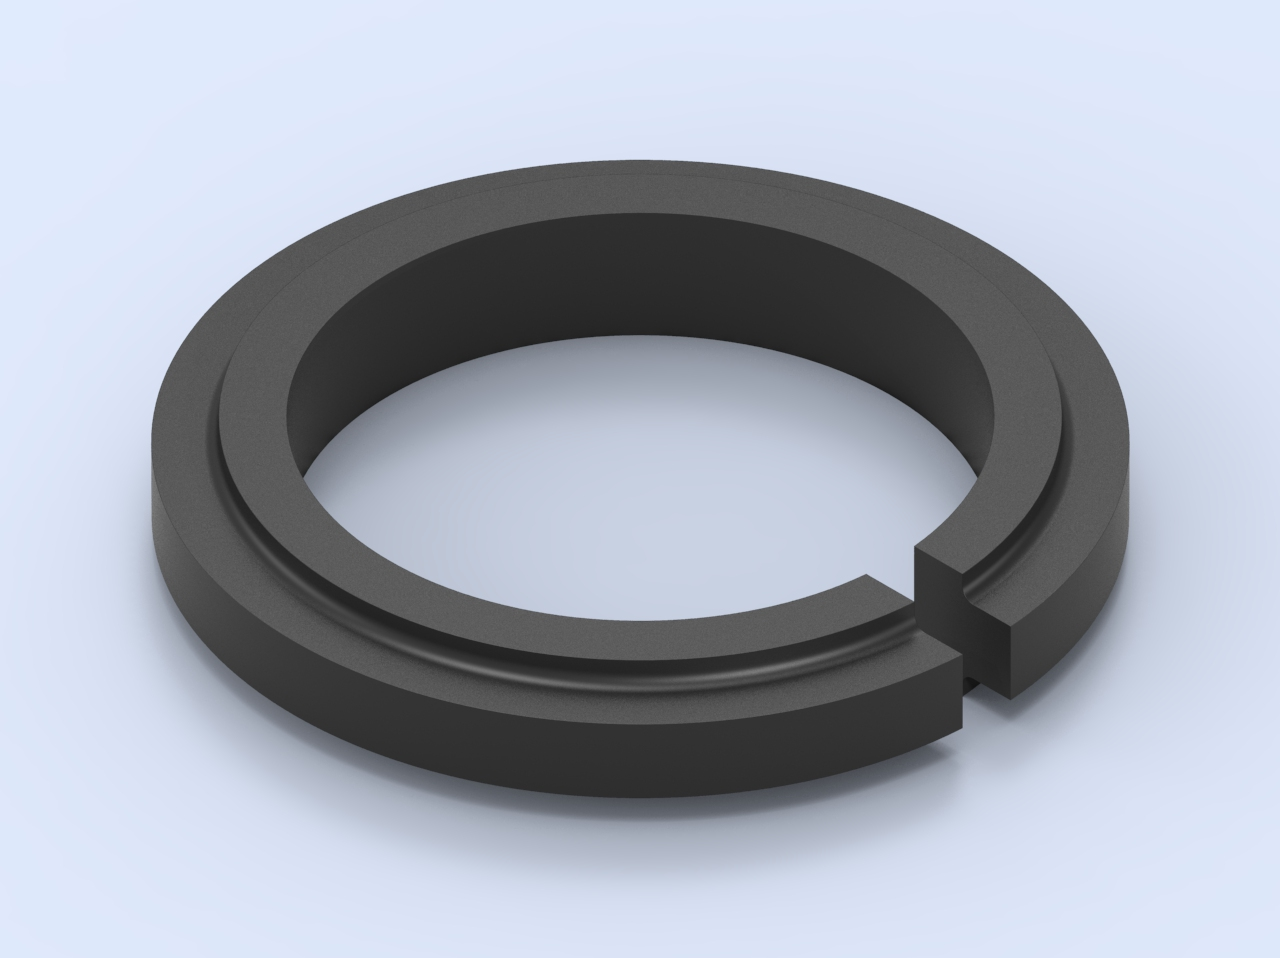 [Translate to Koreanisch:] Guide Ring Version Shouldered with Straight Joint